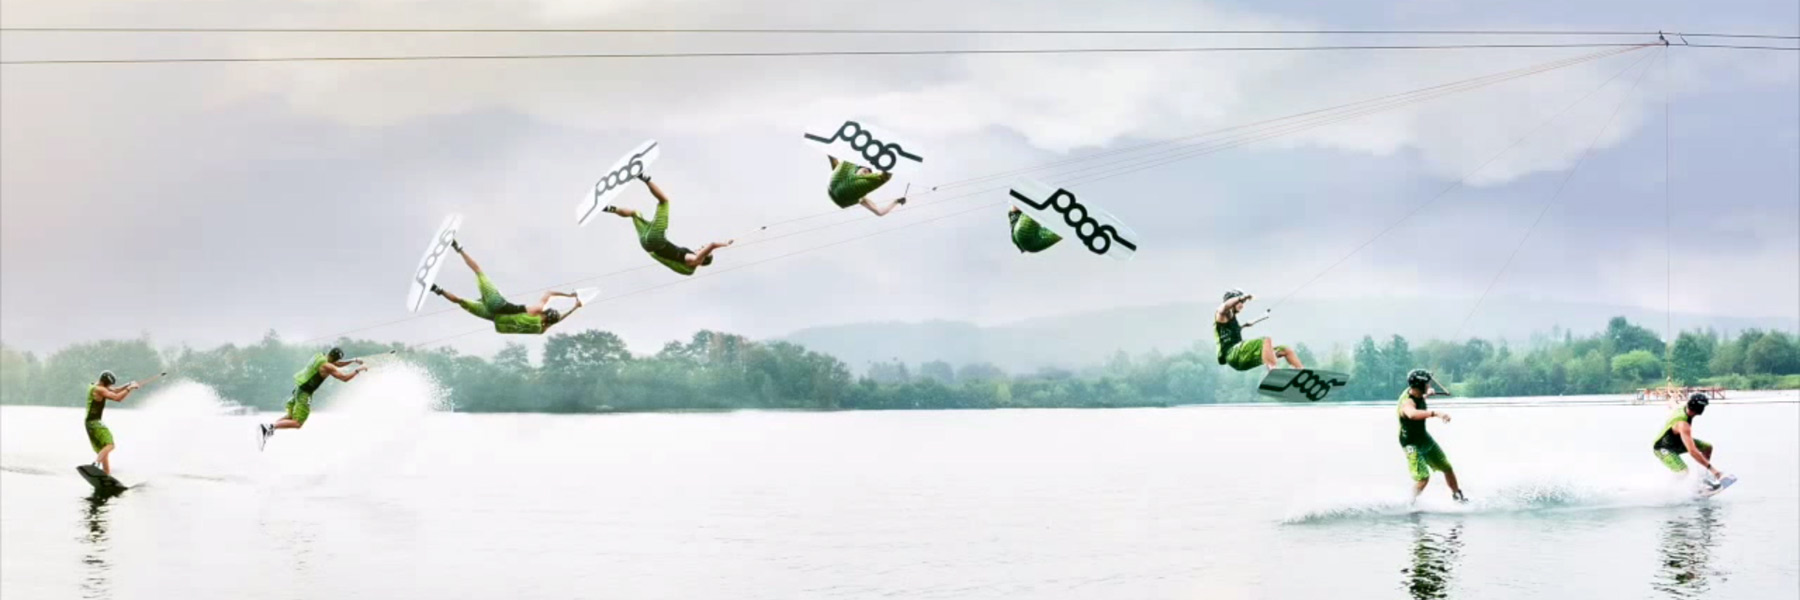 Lürzer's Archive - Wakeboarding and the joy of Photoshop